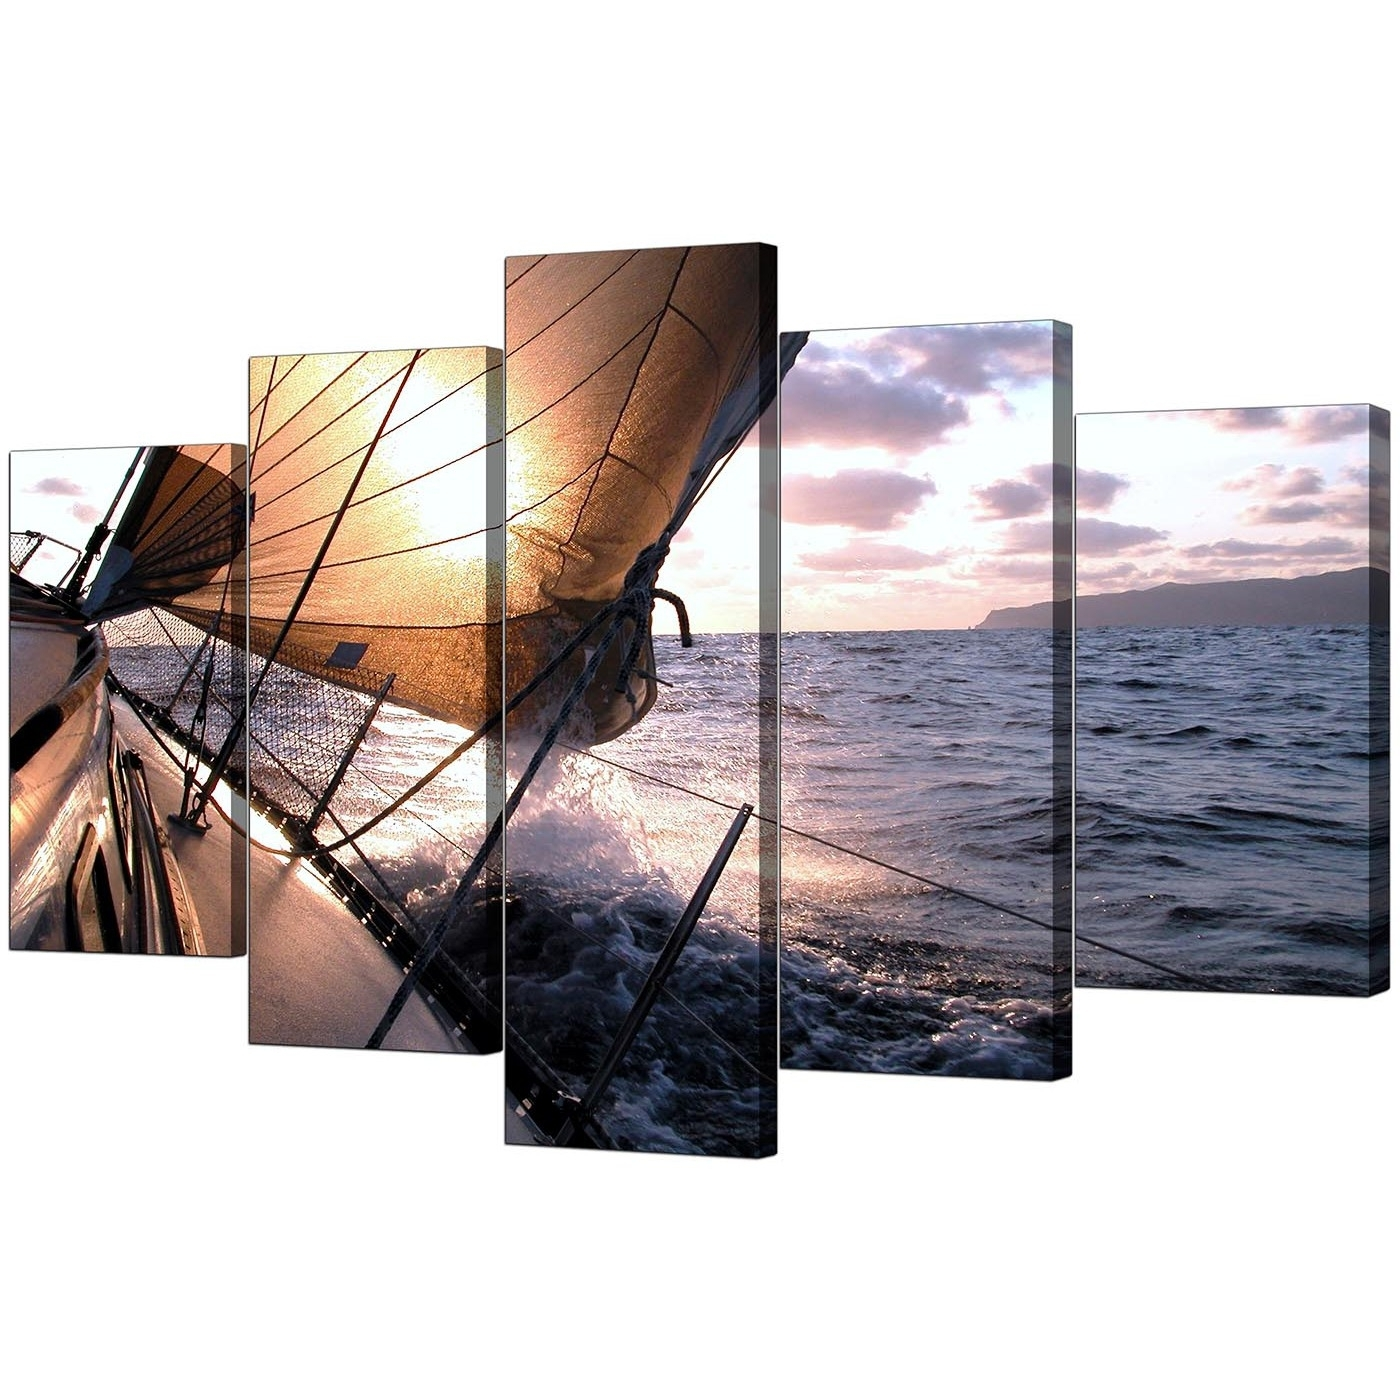 5 Piece Canvas Wall Art Within Favorite Boat Canvas Prints Uk For Your Living Room – 5 Piece (Gallery 3 of 20)